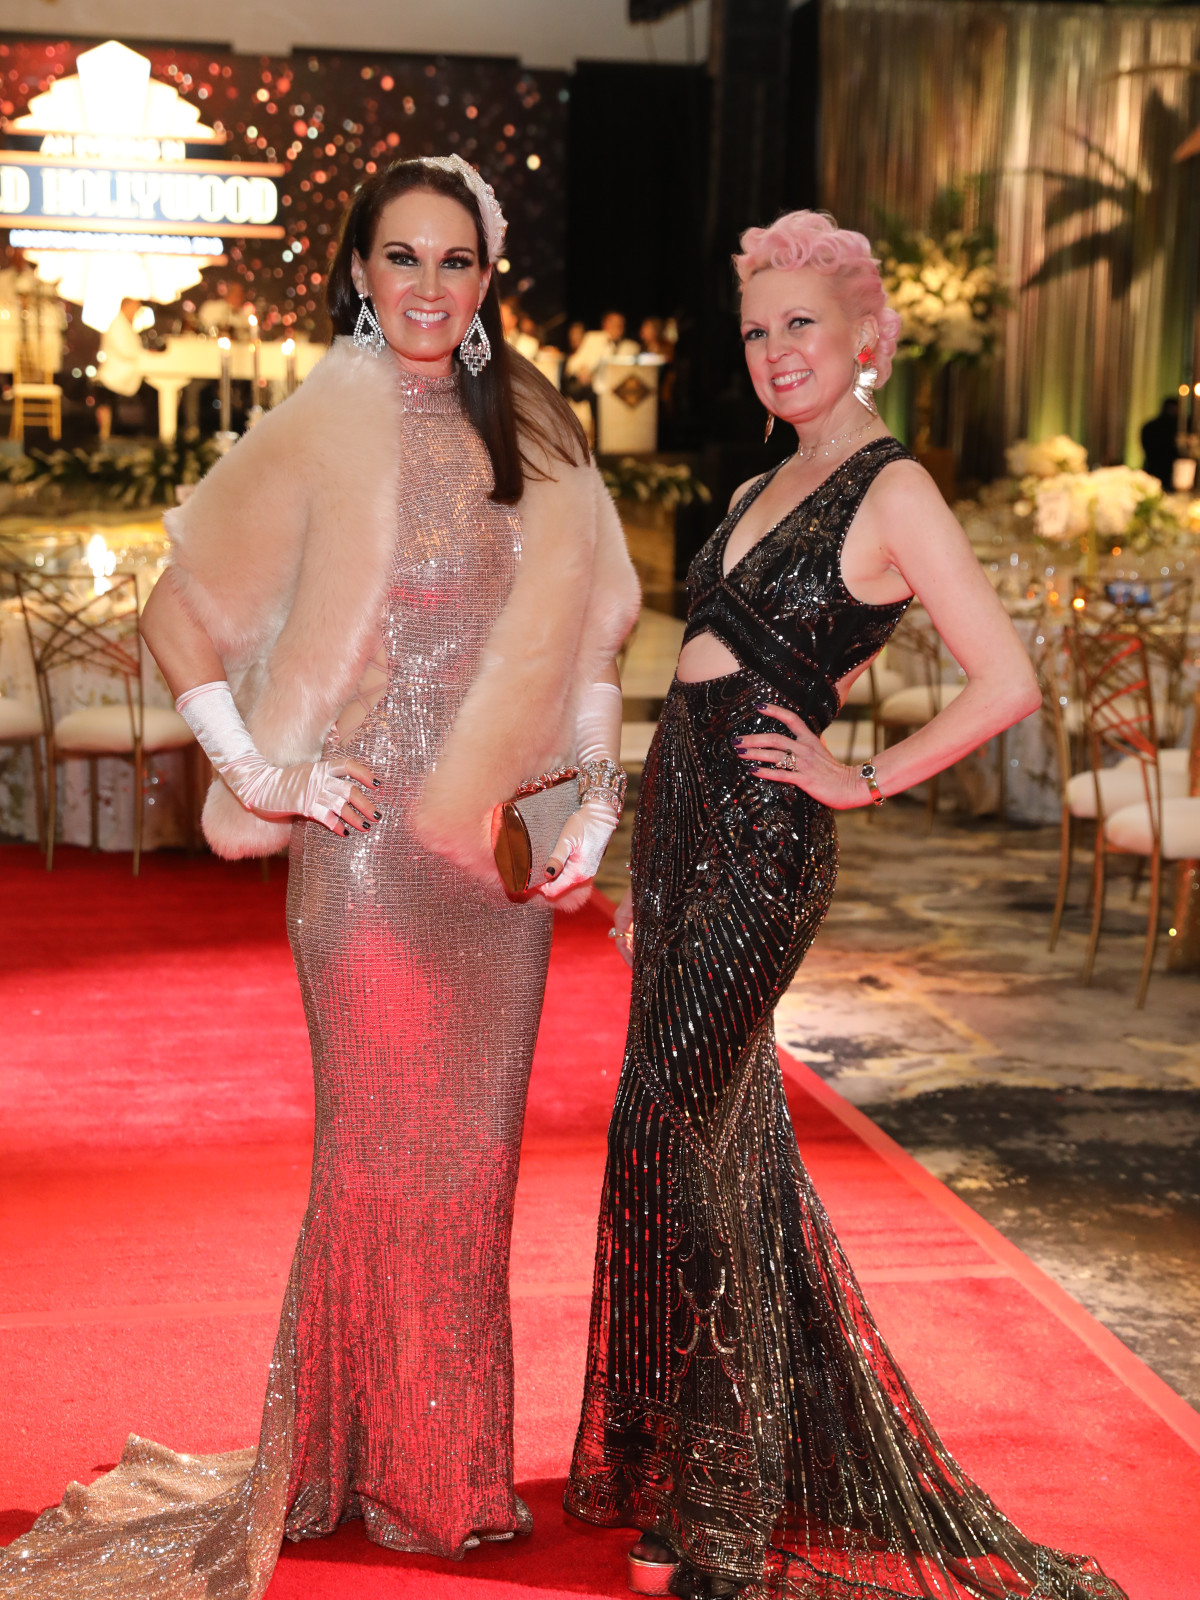 Opera Ball gowns Beth Muecke and Vivian Wise